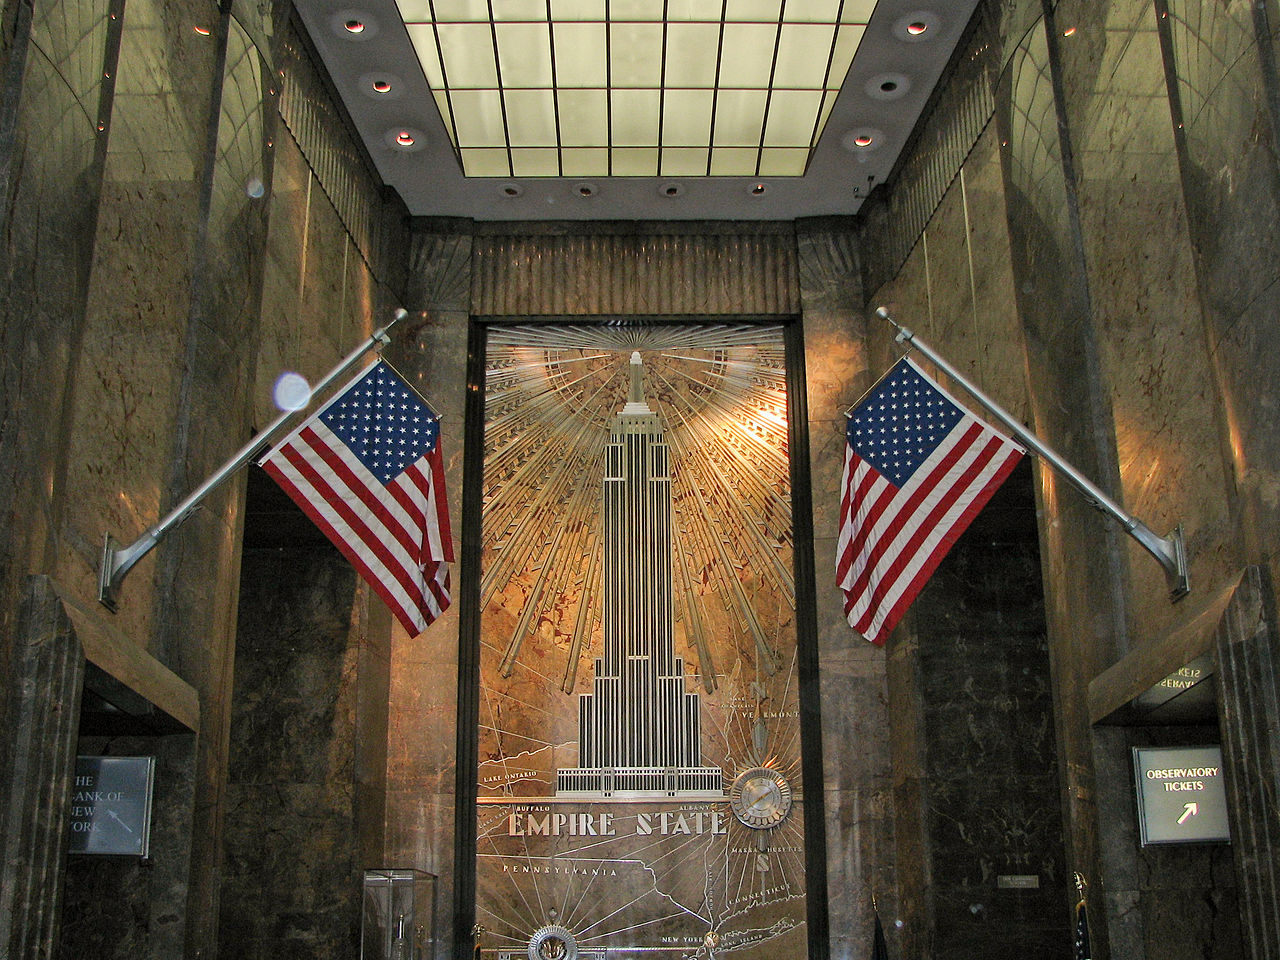 Interesting facts about the Empire State Building